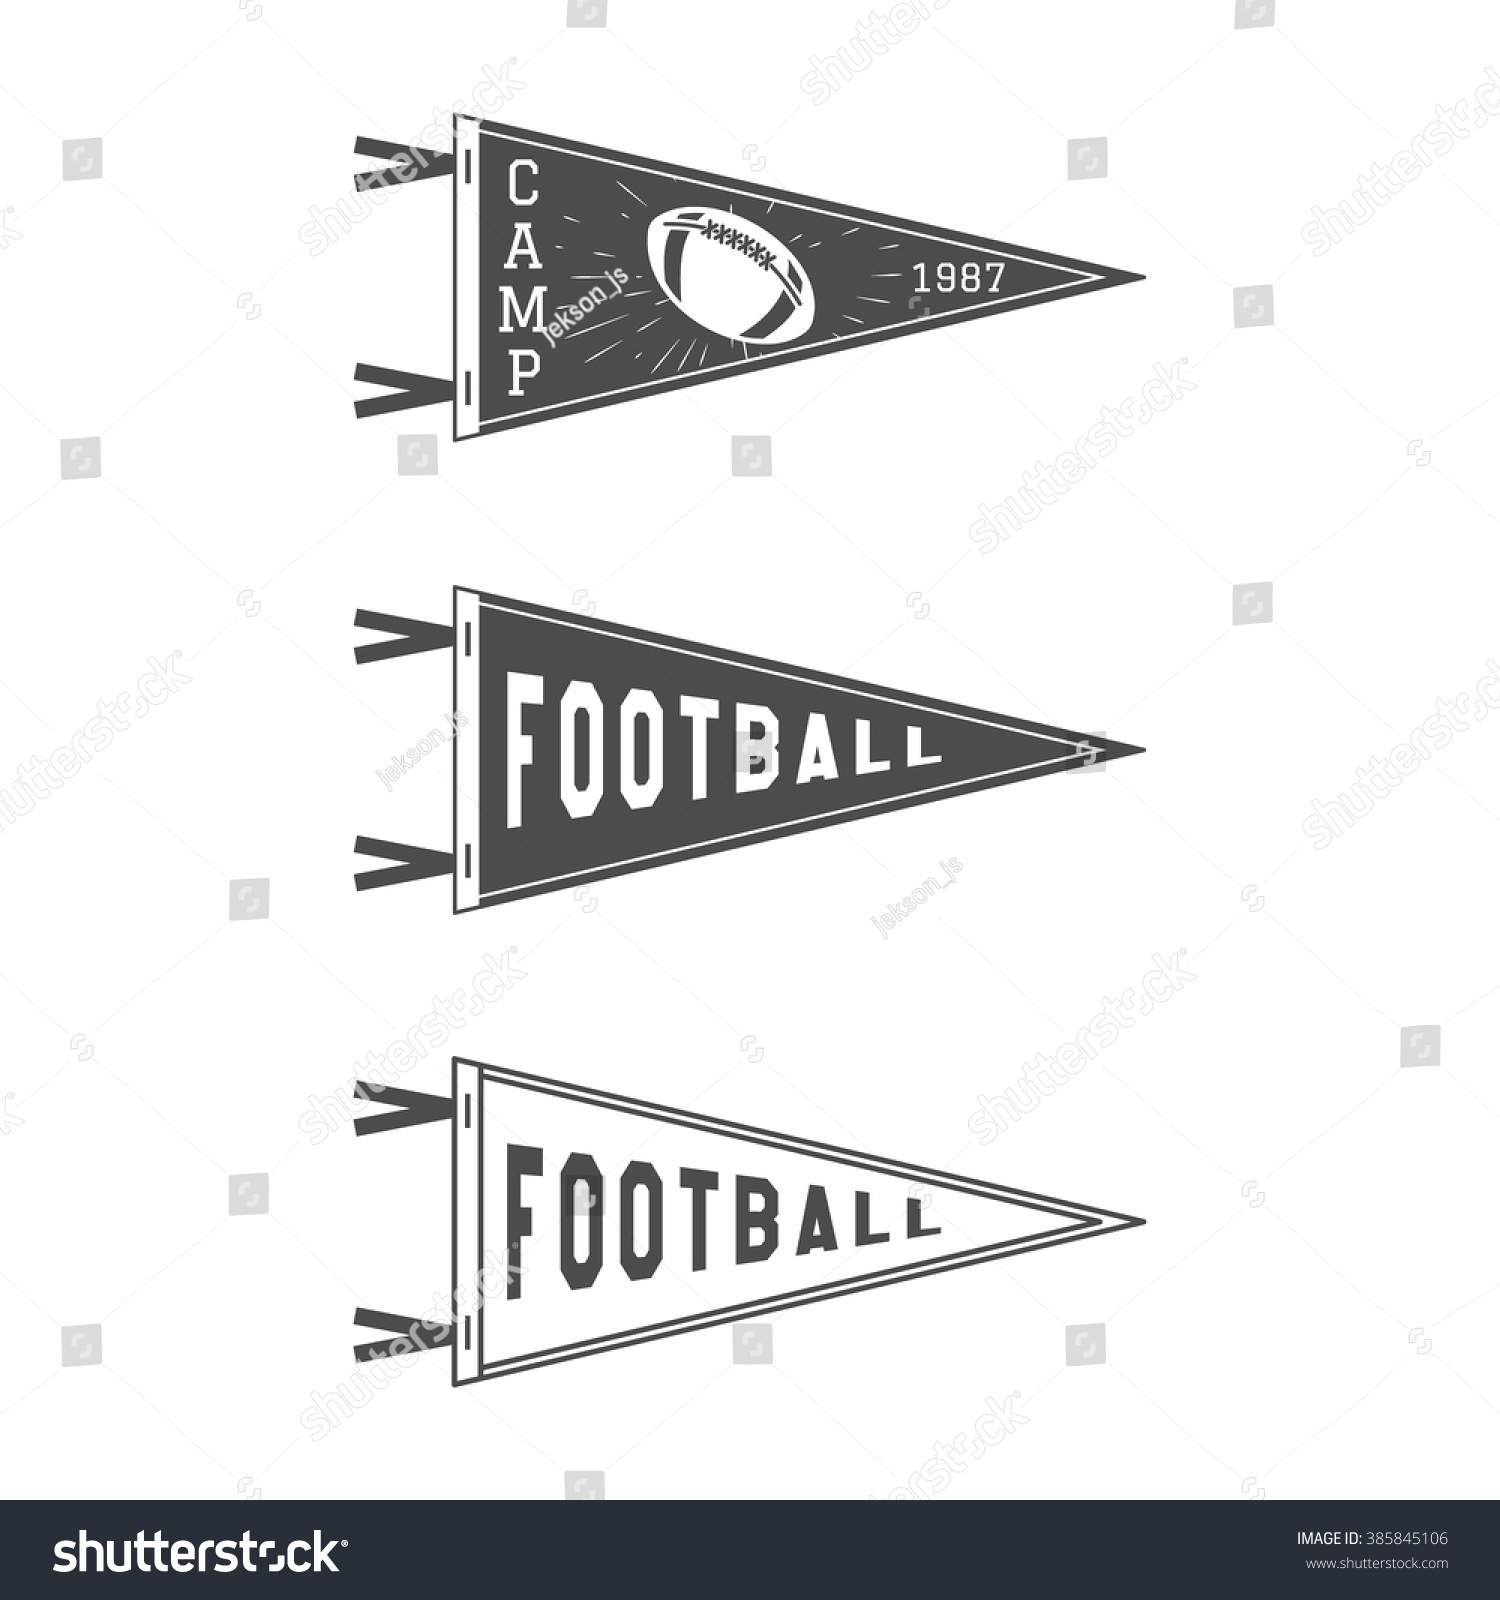 College football pennant flags set vector stock vector 385845106 college football pennant flags set vector football pendant icons university usa sport flag pronofoot35fo Images